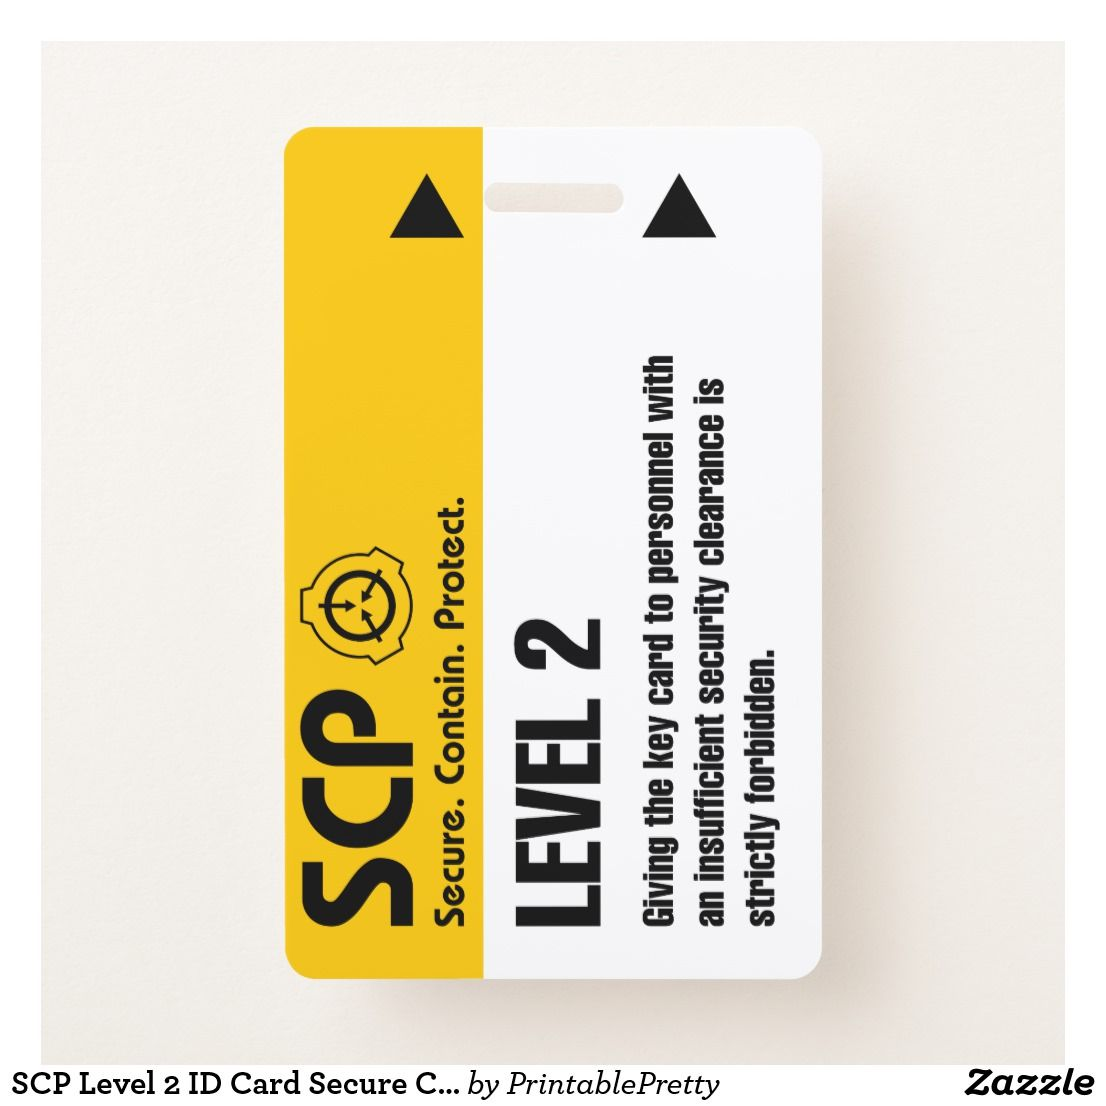 Scp Level 2 Id Card Secure Contain Protect Cosplay Badge Zazzle Com In 2021 Scp Scp 682 Cards